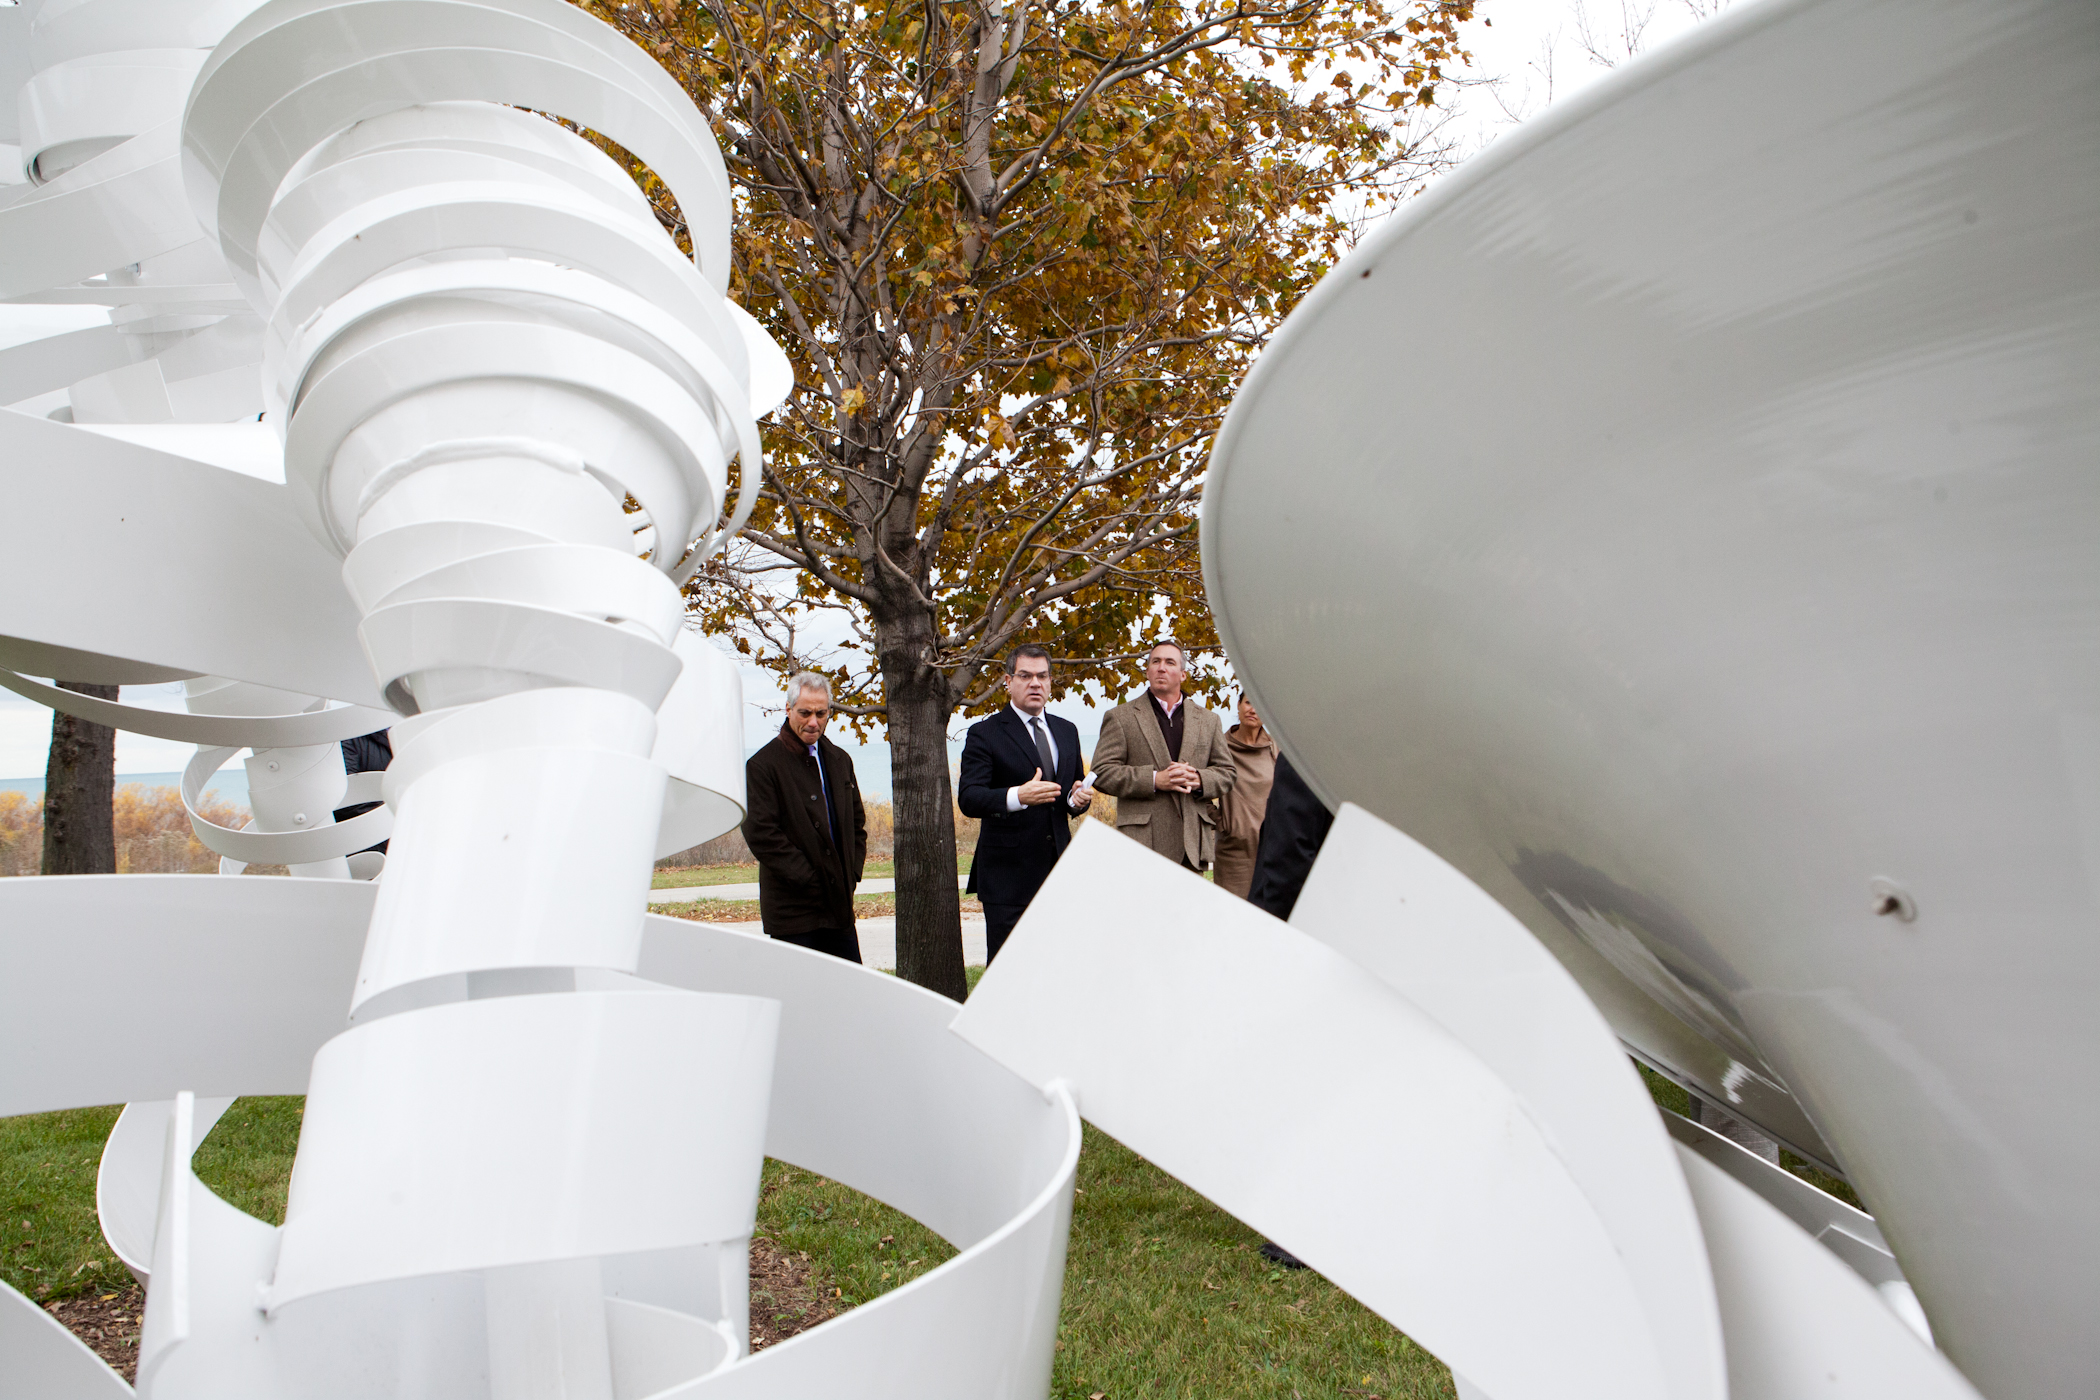 Mayor Emanuel Joins Members of Arts Community on Tour Of Newly Installed Public Art Along Lakefront